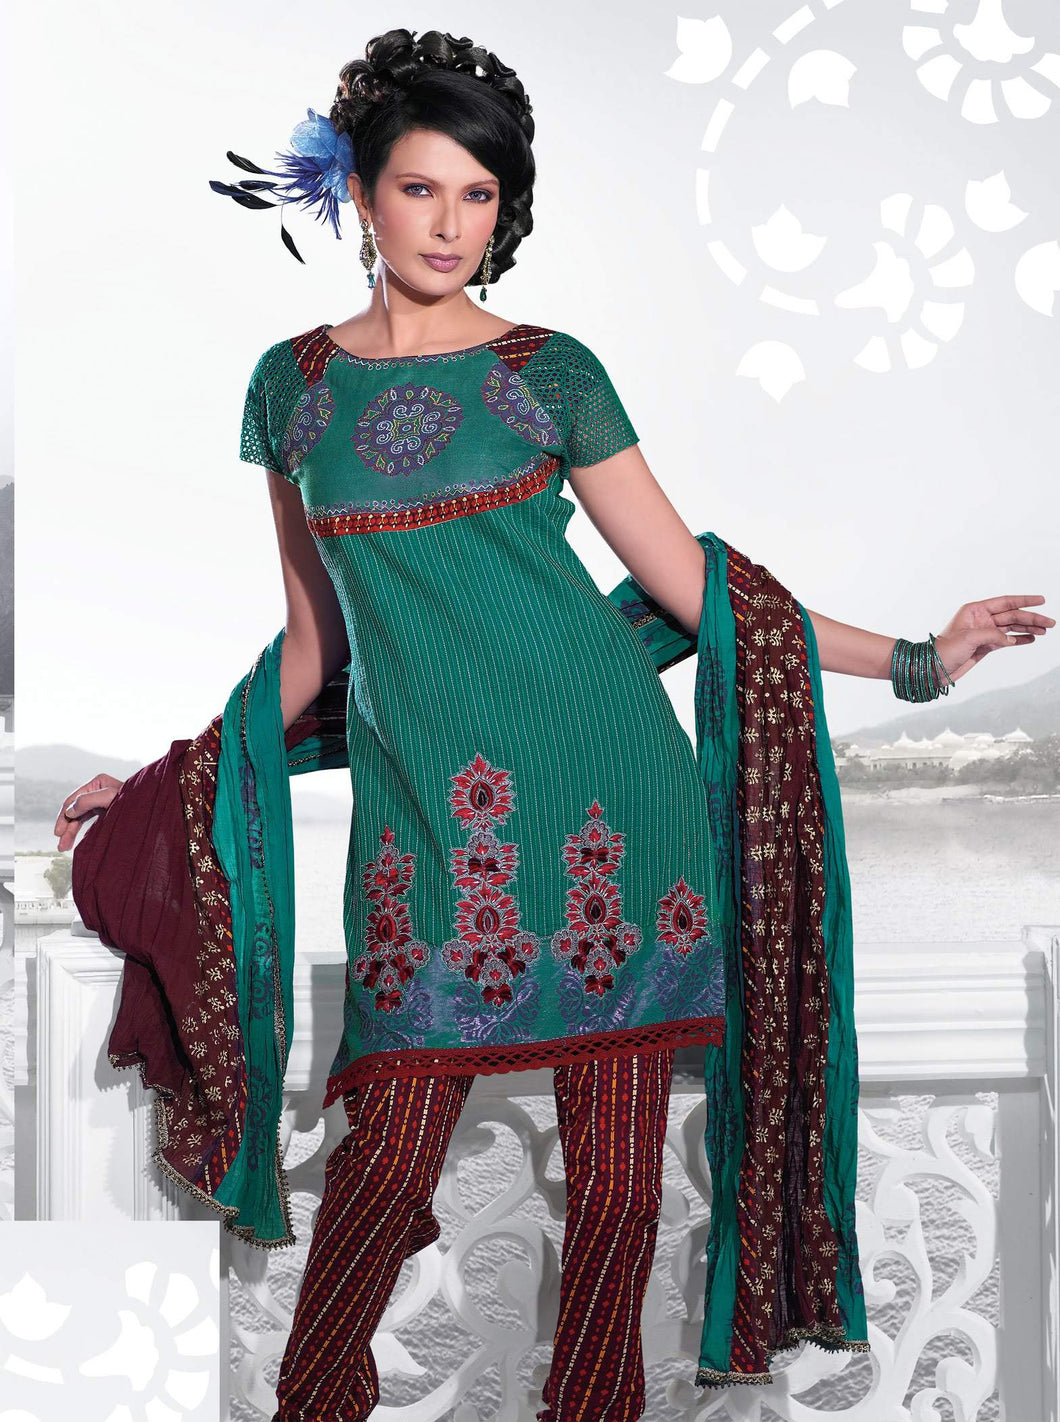 Turquoise Multi Embellished Cotton Stitched  Salwar kameez Churidar SC2408 - Ethnic's By Anvi Creations